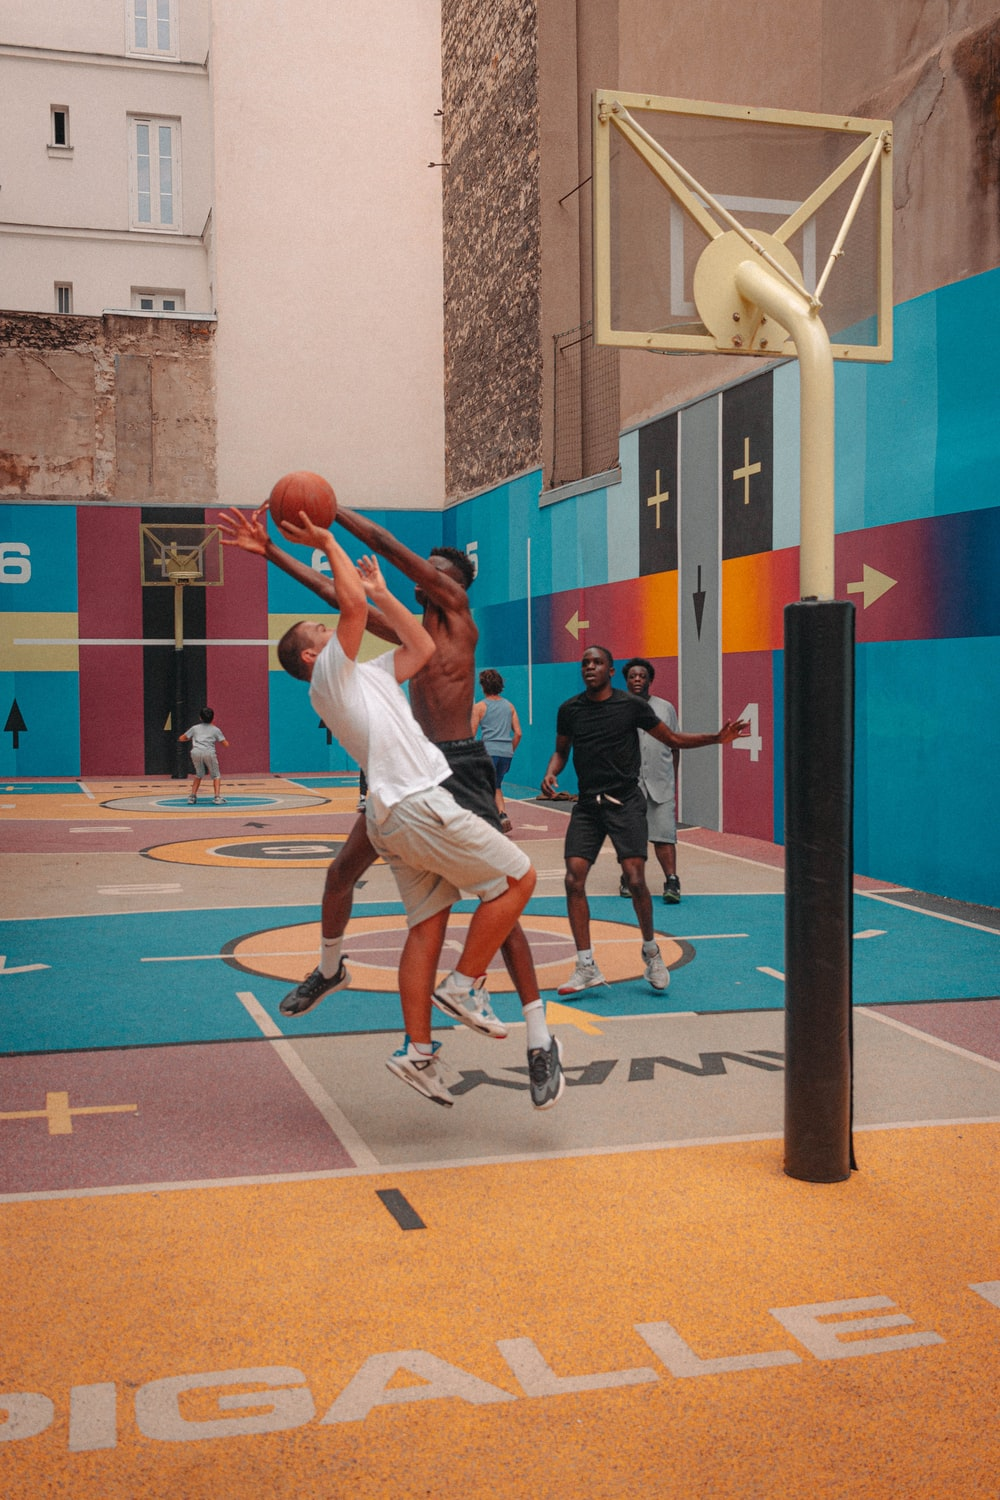 man in white shirt and white shorts playing basketball